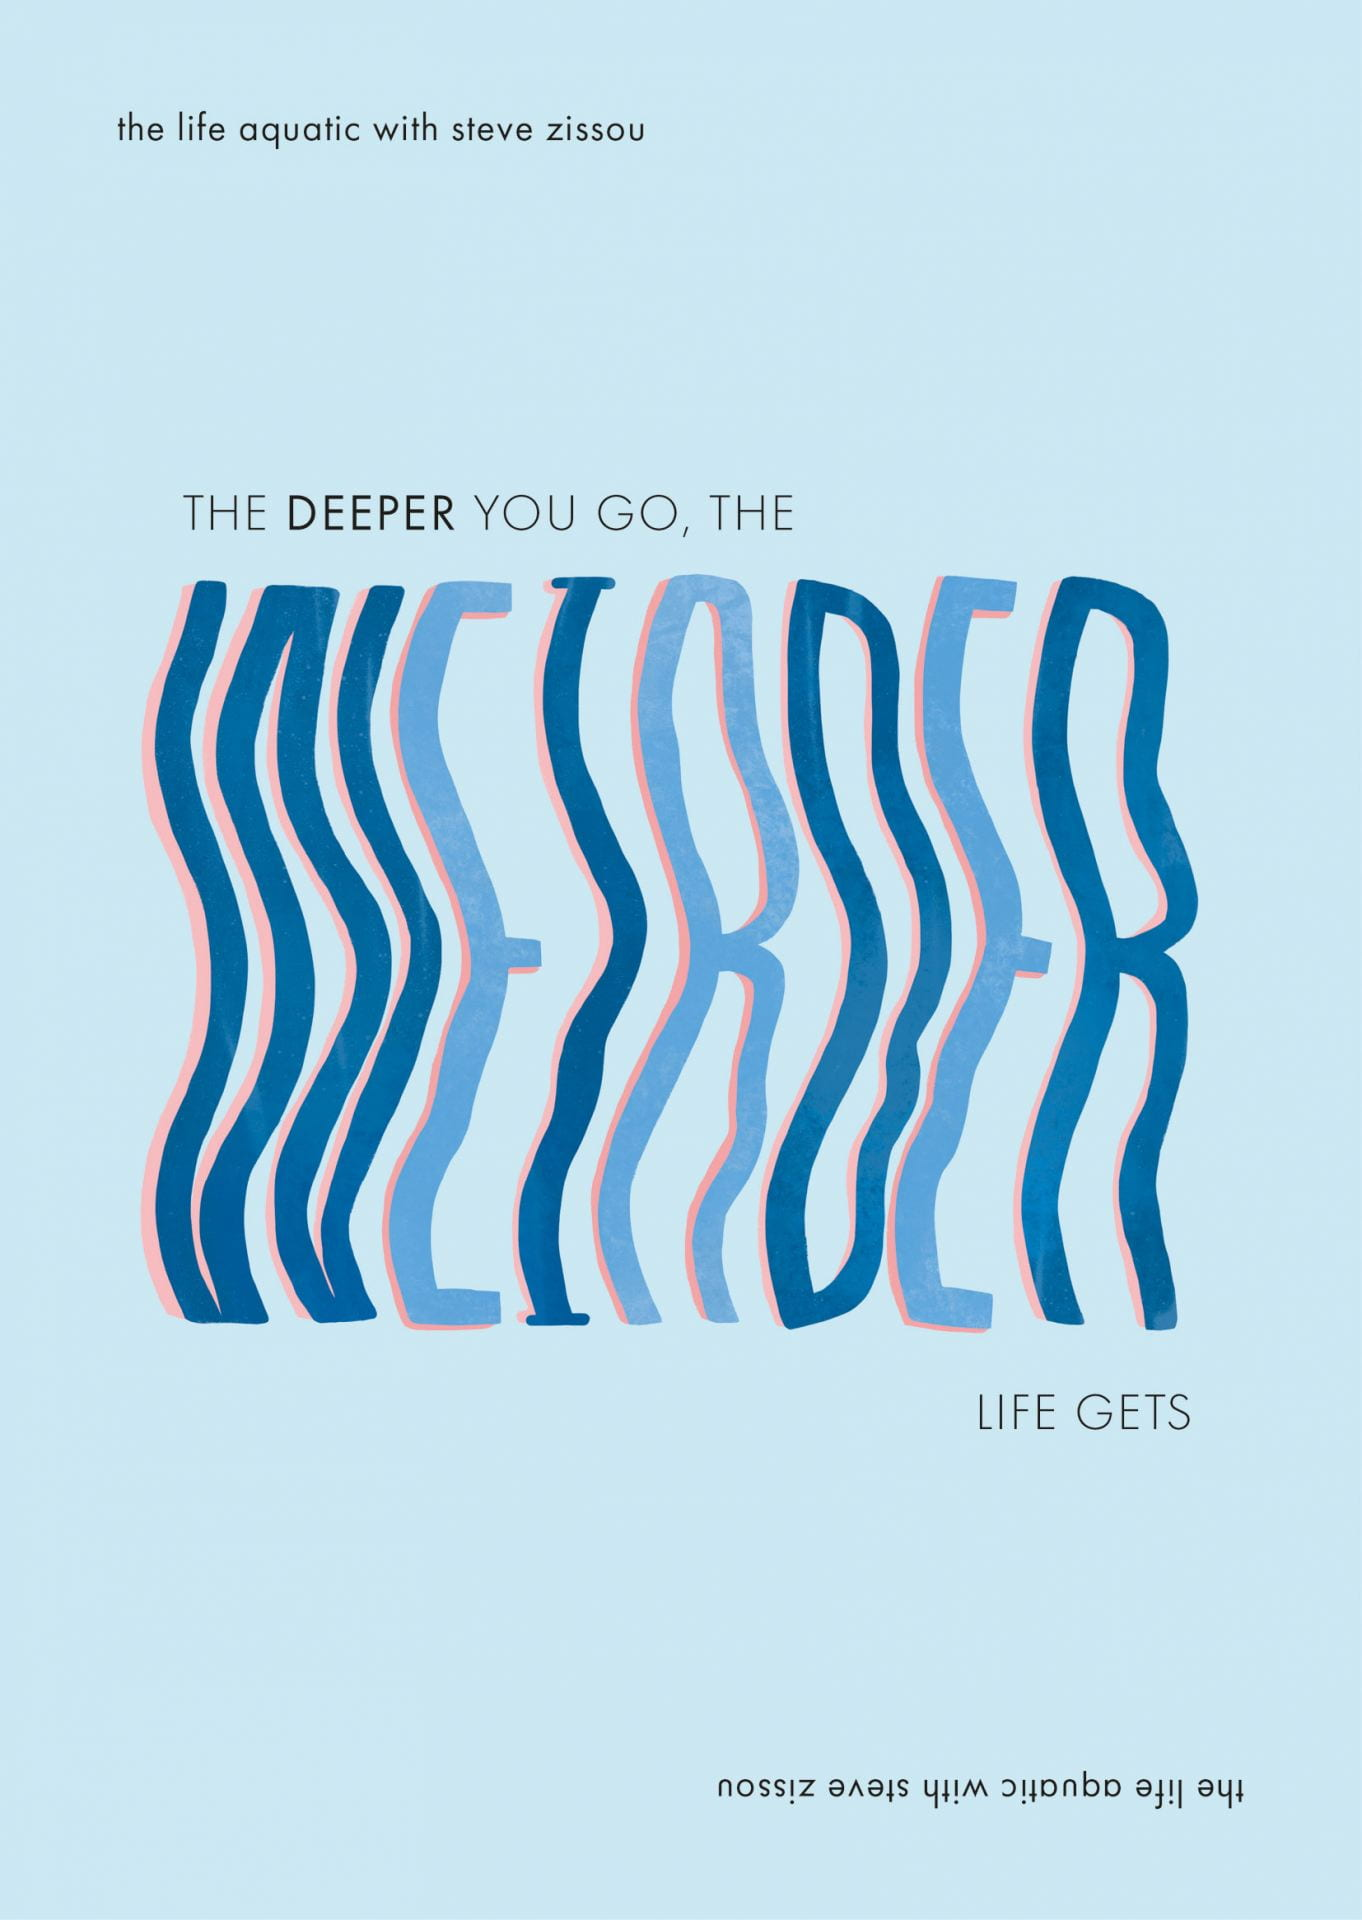 Text reads: 'The Deeper You Go, The Weirder Life Gets' on a baby blue background, the word 'Weirder' is displayed in a blue, large wavey typeface.